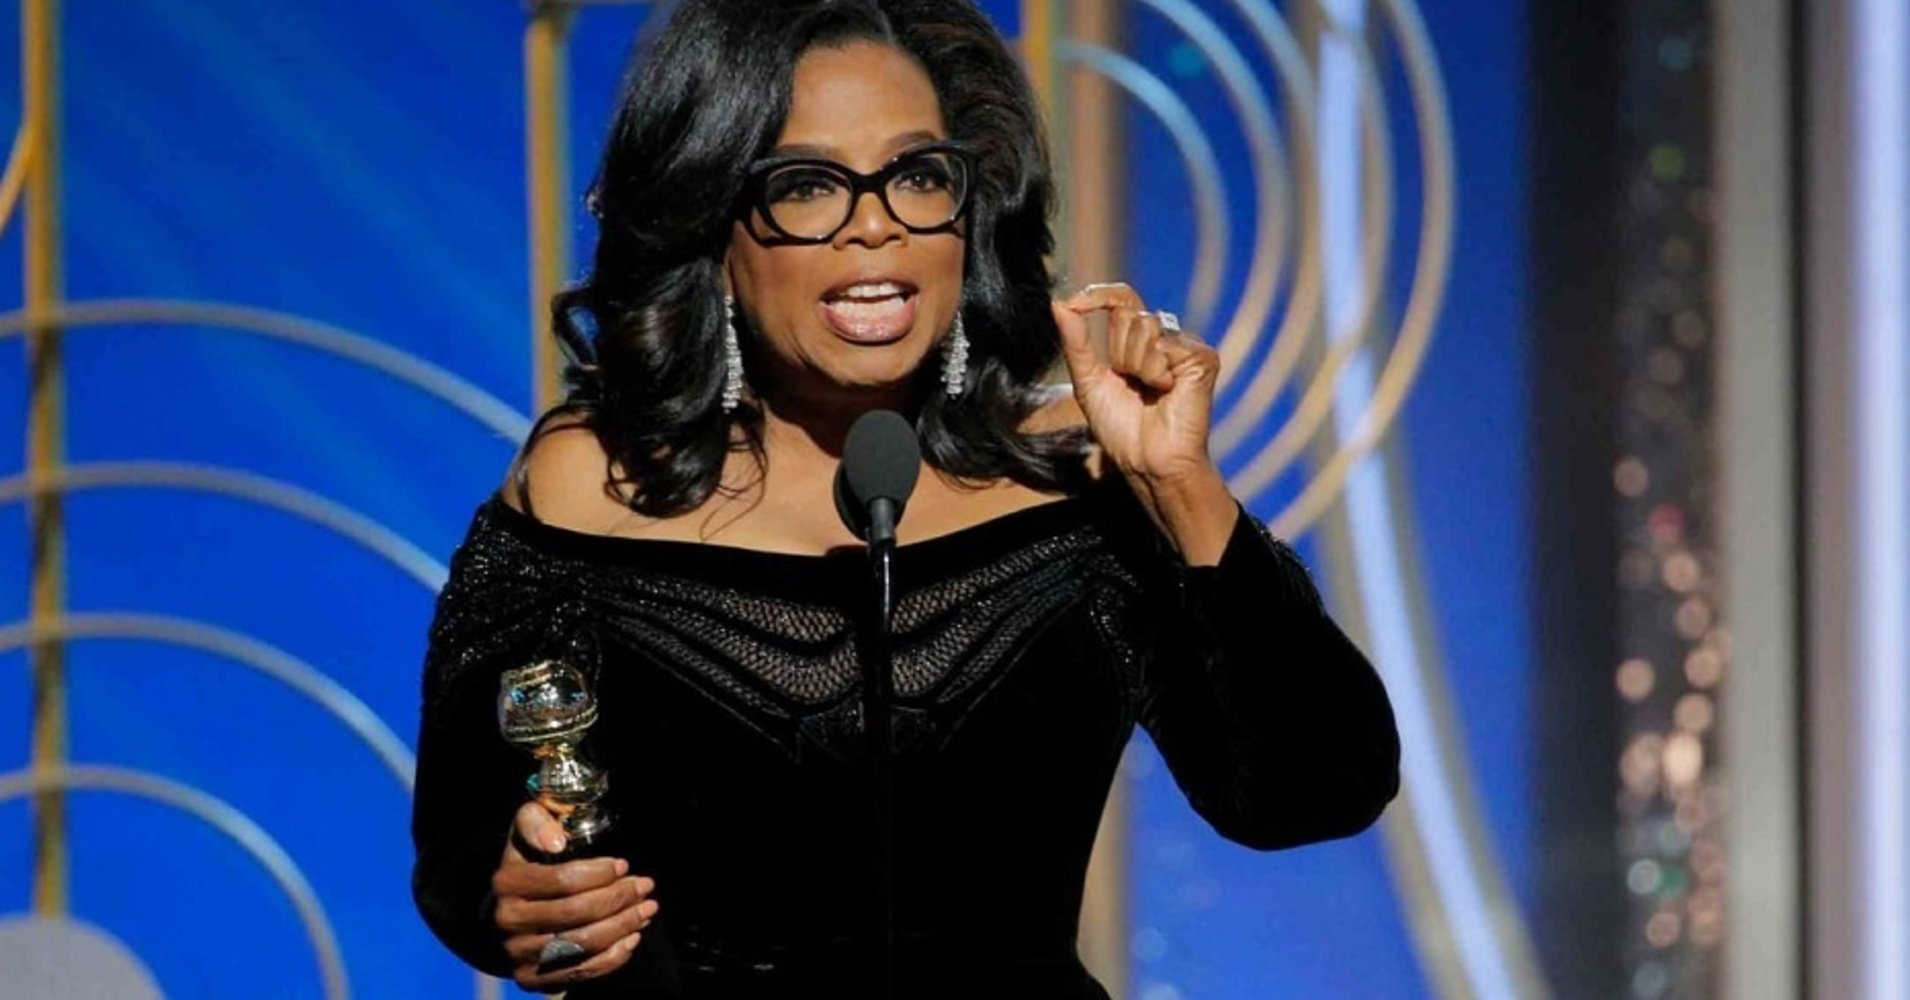 Dear Oprah And Other Celebrities, Please Don't Run For President